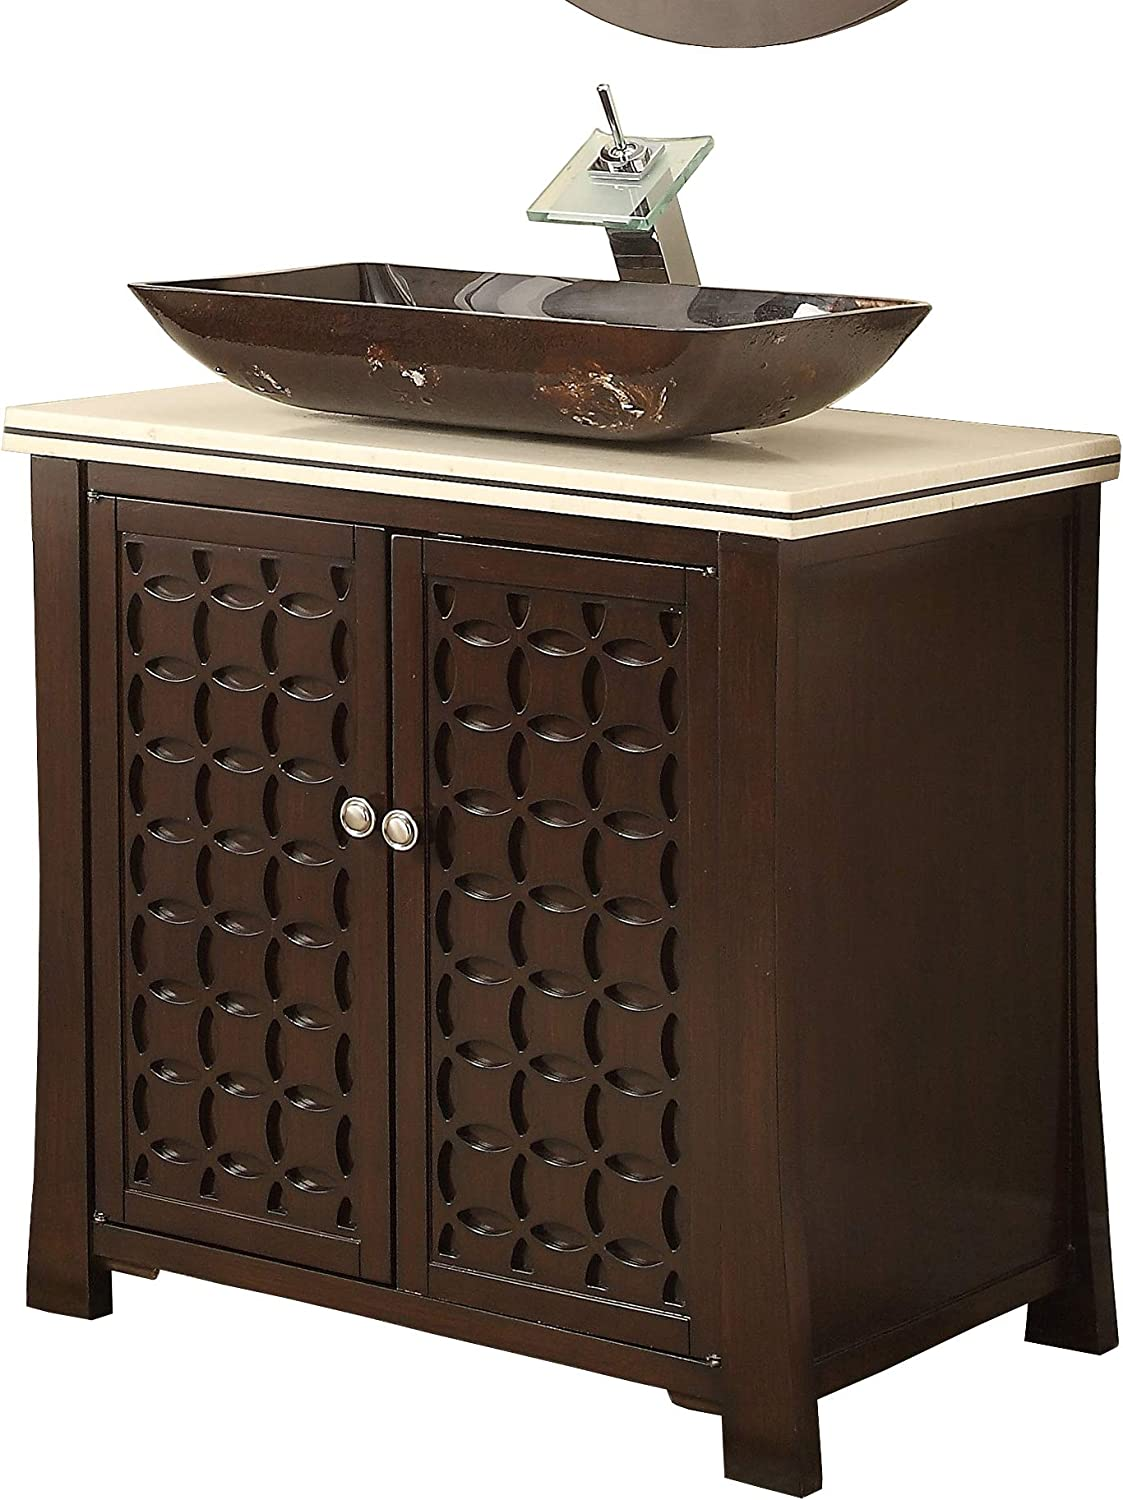 30 Giovanni Vessel Sink Brown Modern Contemporary Bathroom Vanity HF339A